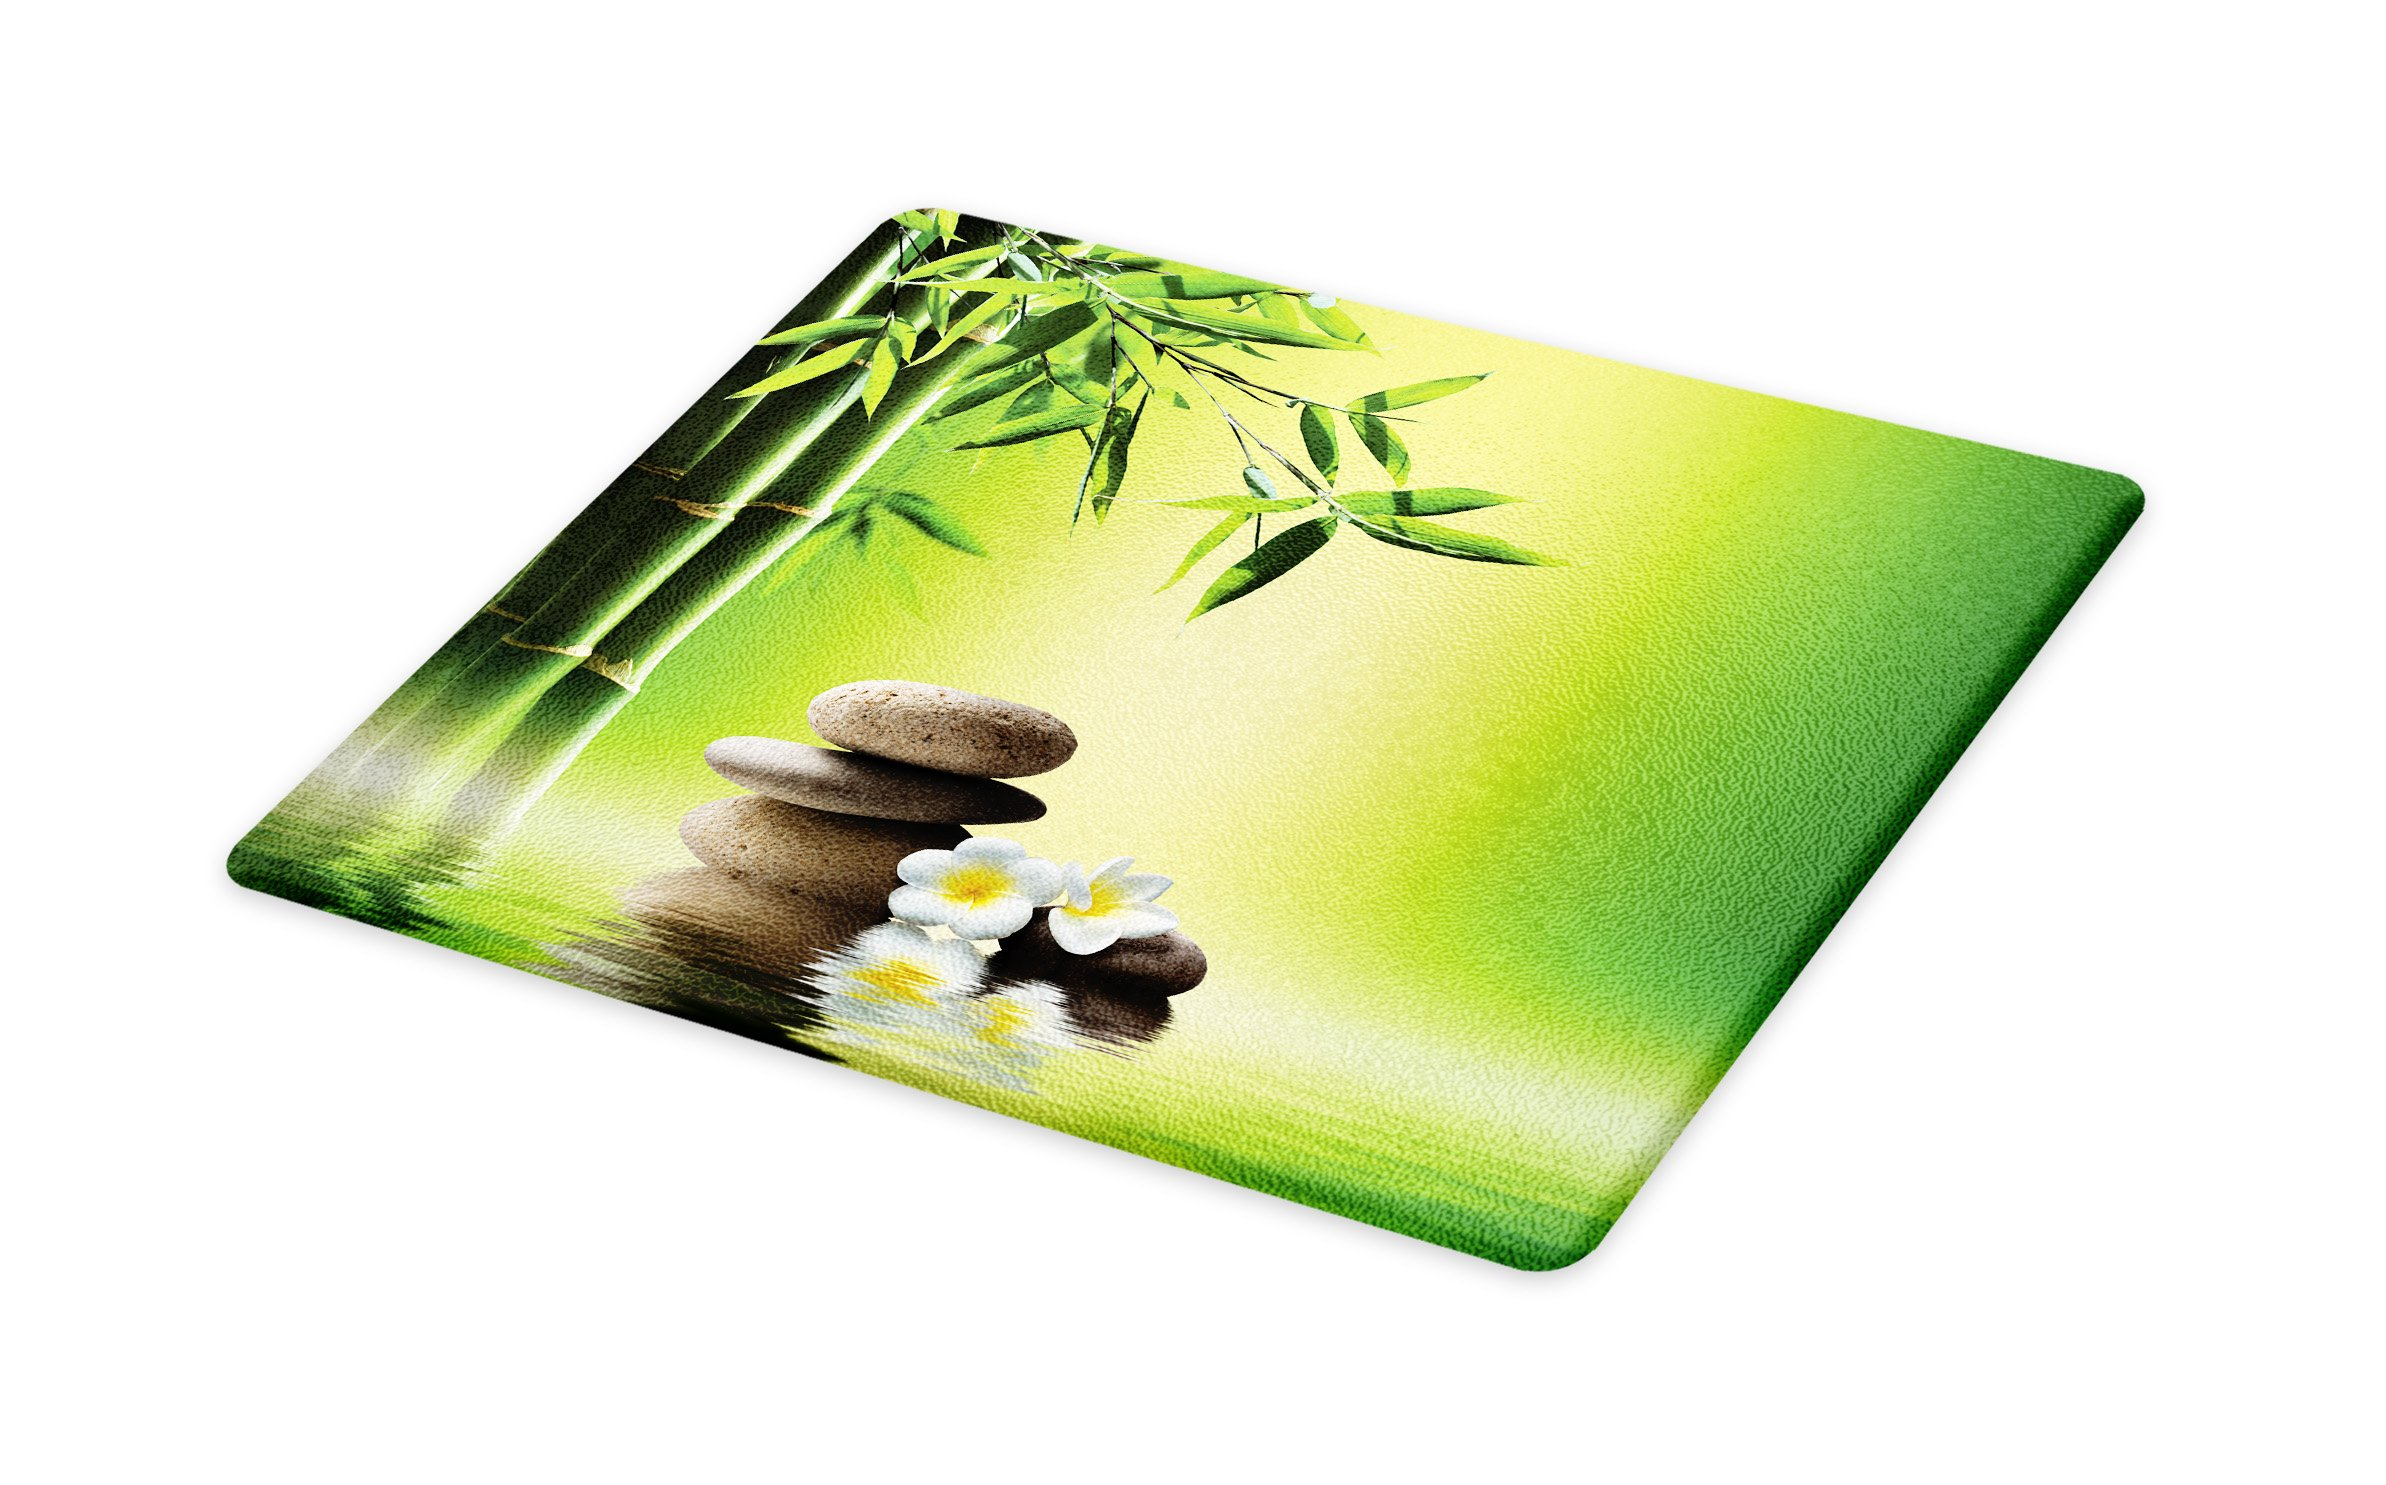 Lunarable Spa Cutting Board, Japanese Therapy Relaxation Stones Frangipani Flowers Bamboo Tree Healthcare Theme, Decorative Tempered Glass Cutting and Serving Board, Small Size, Green Yellow